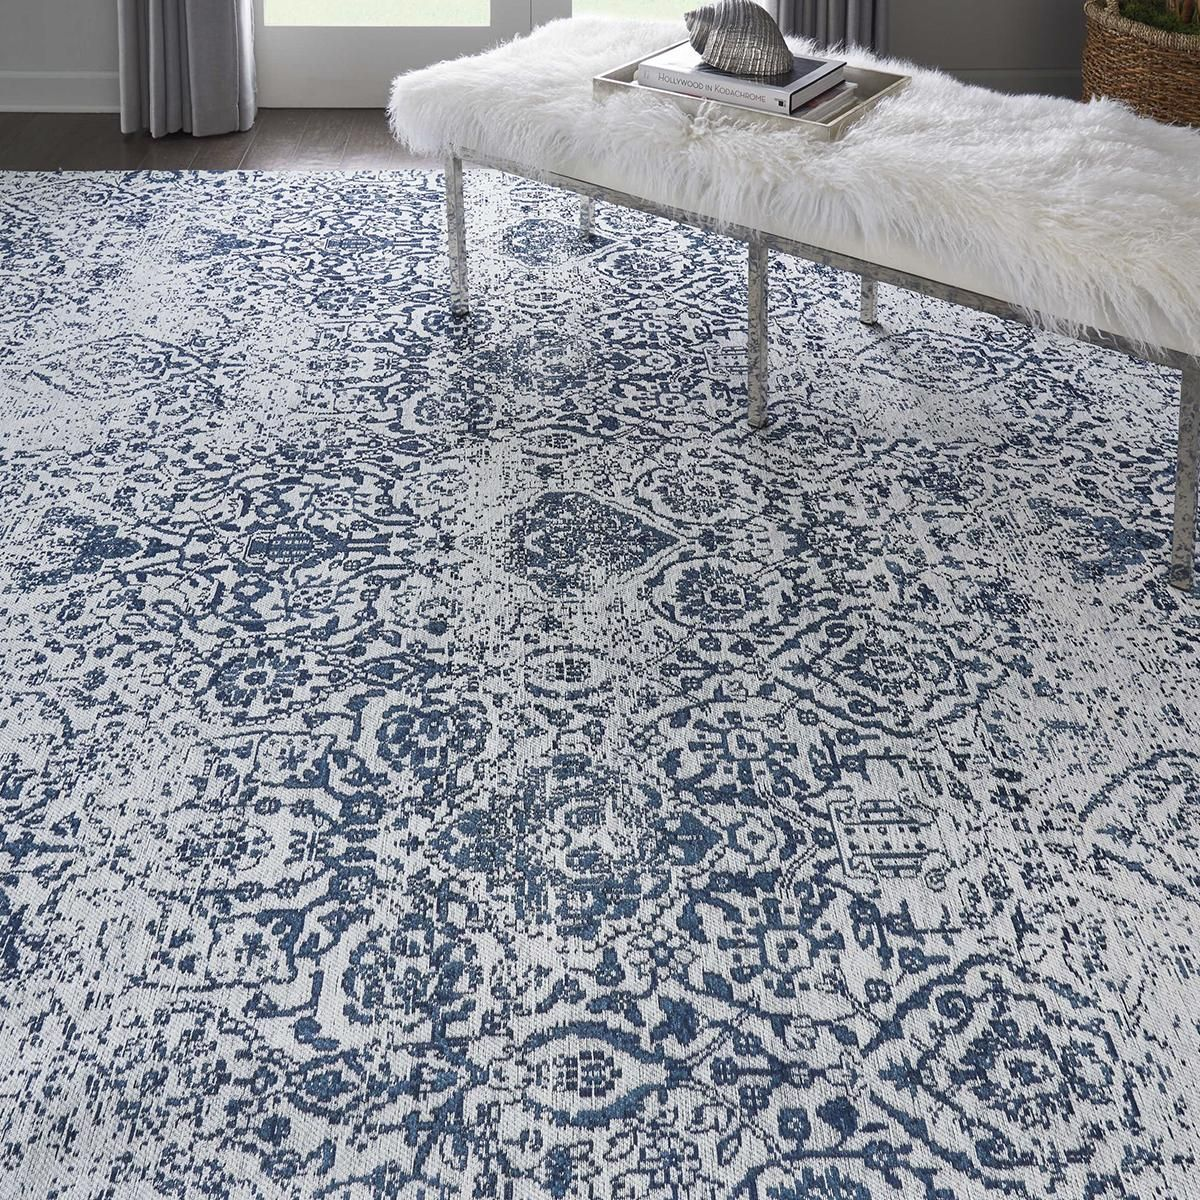 Nfm Small Rug Antique Inspiration Damask Area Rugs